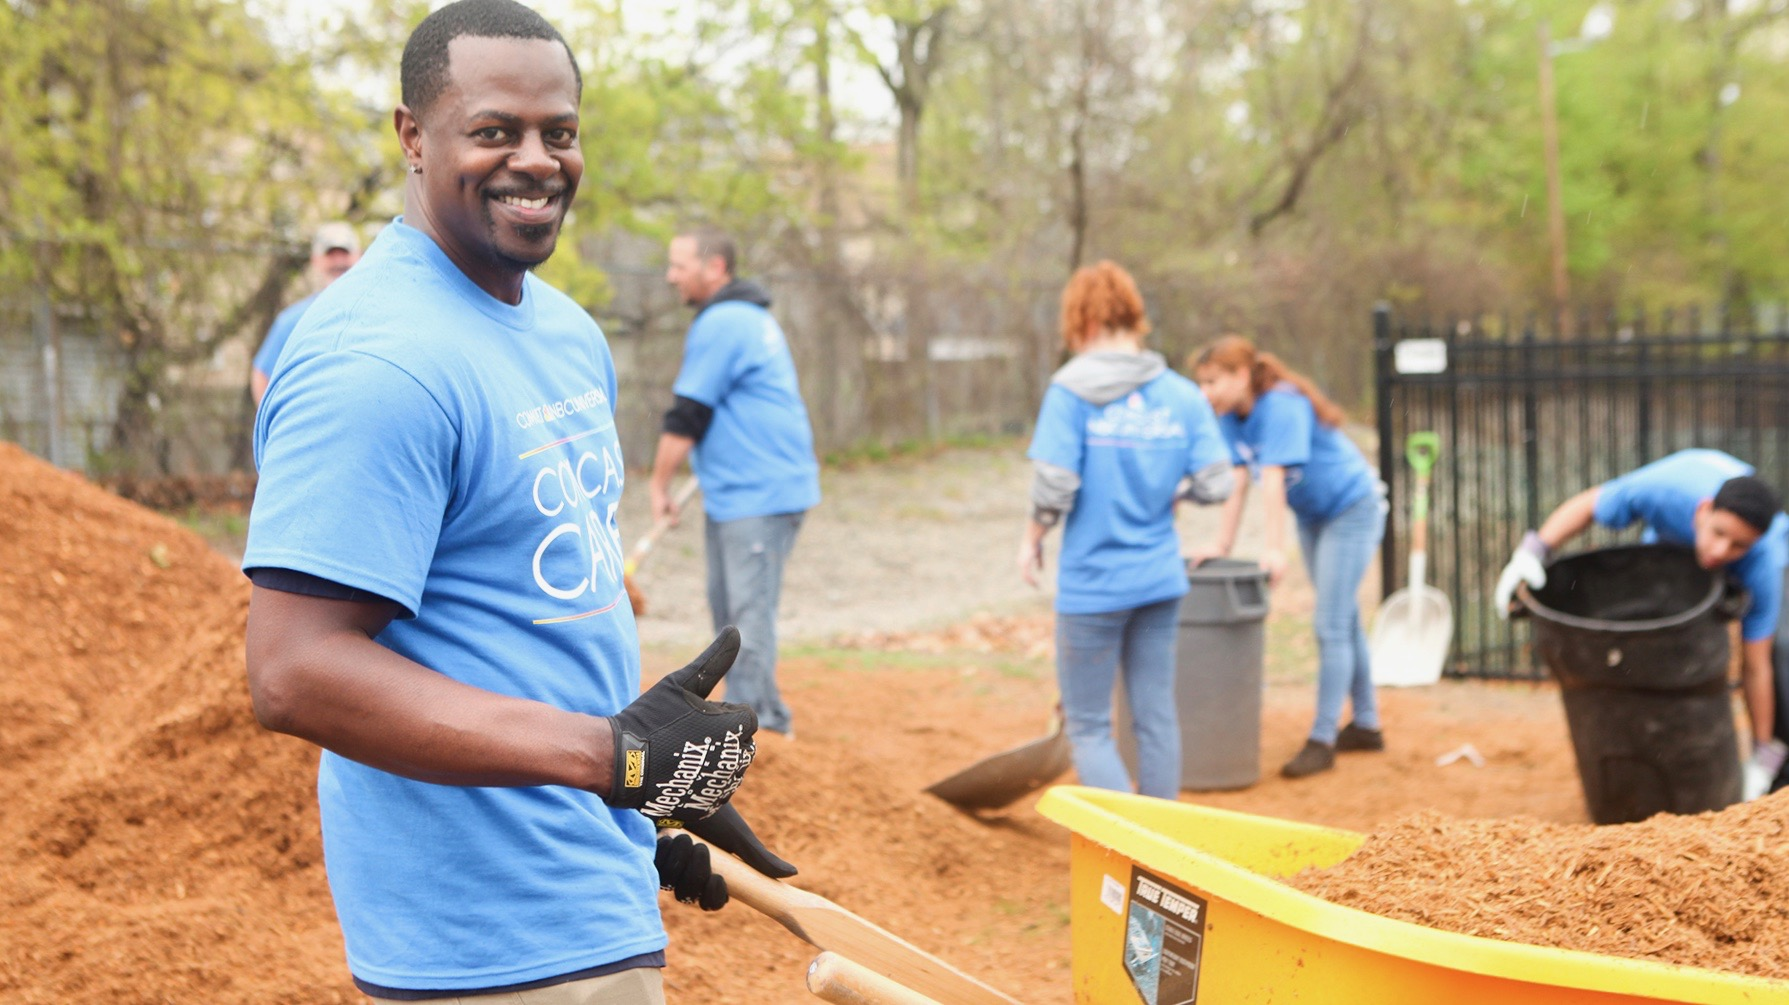 Comcast Cares Day volunteers carry mulch in wheelbarrows.